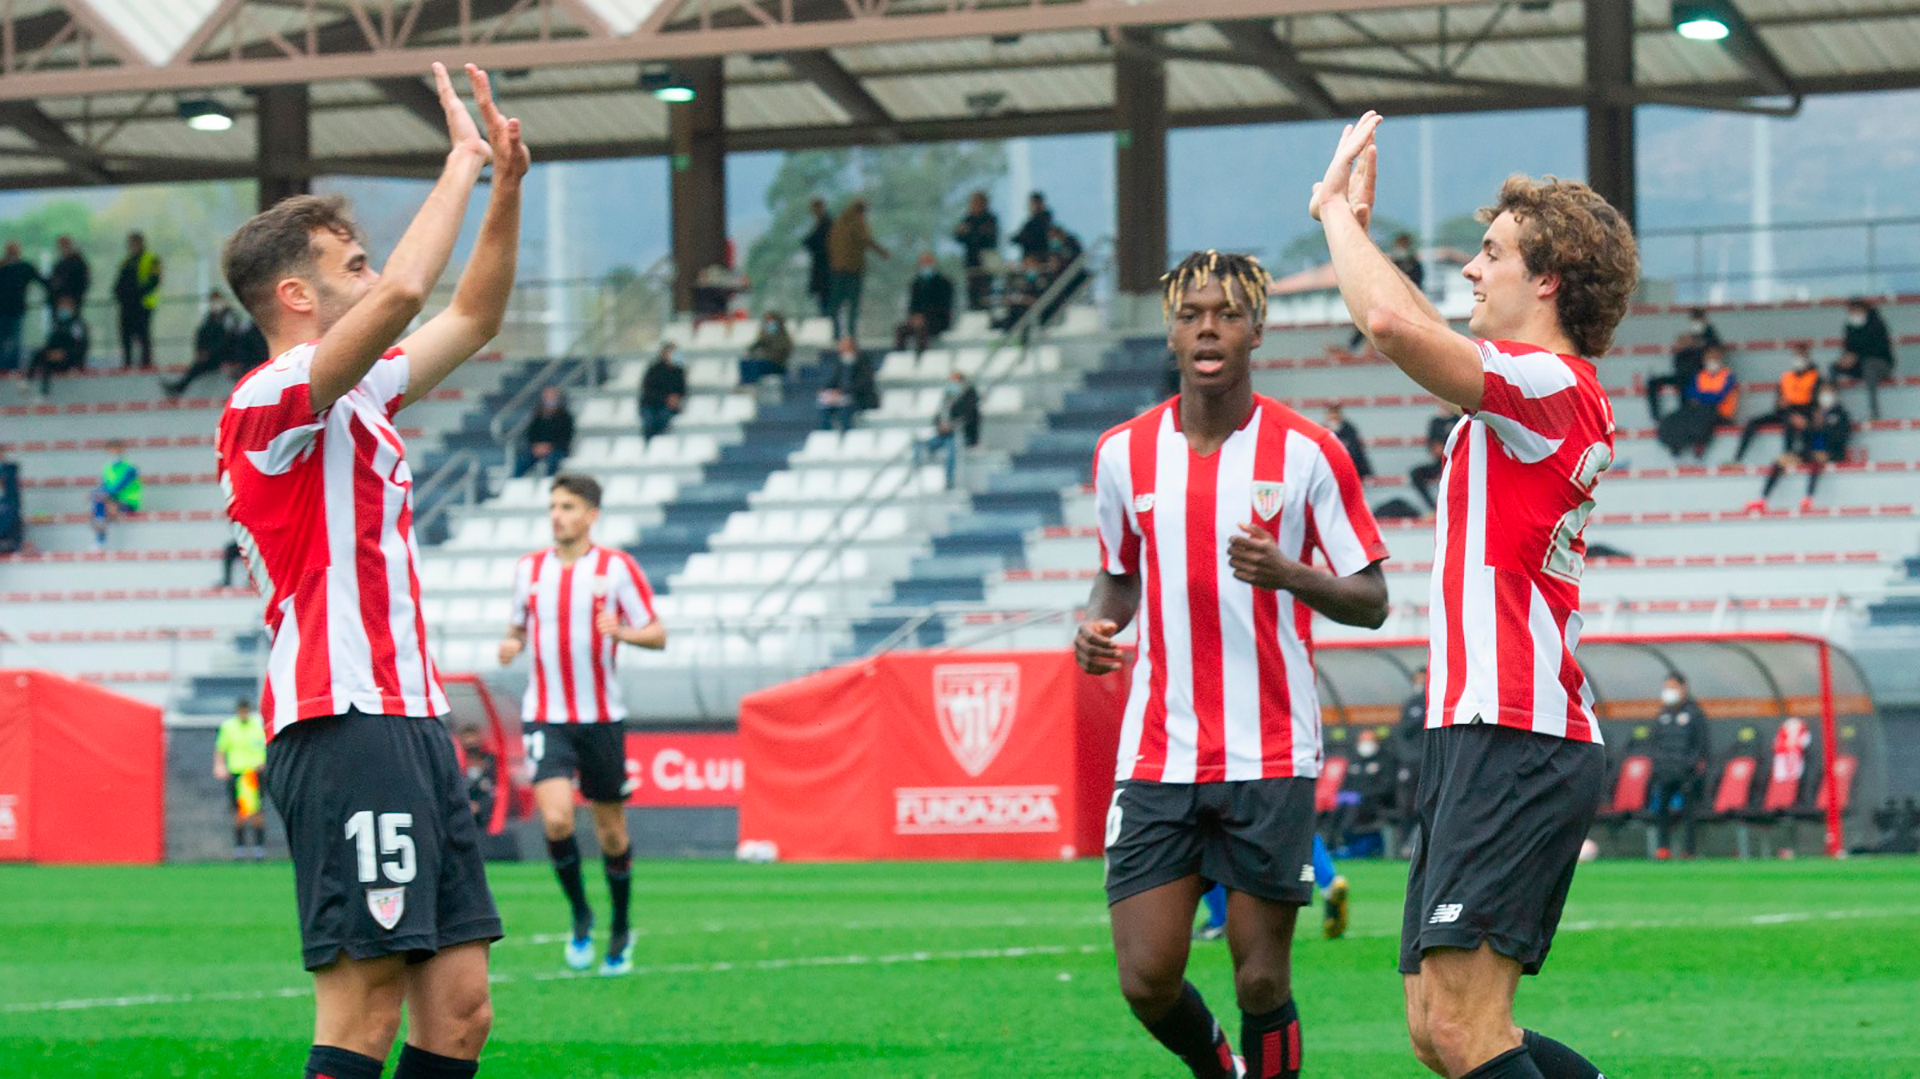 El Bilbao Athletic no afloja